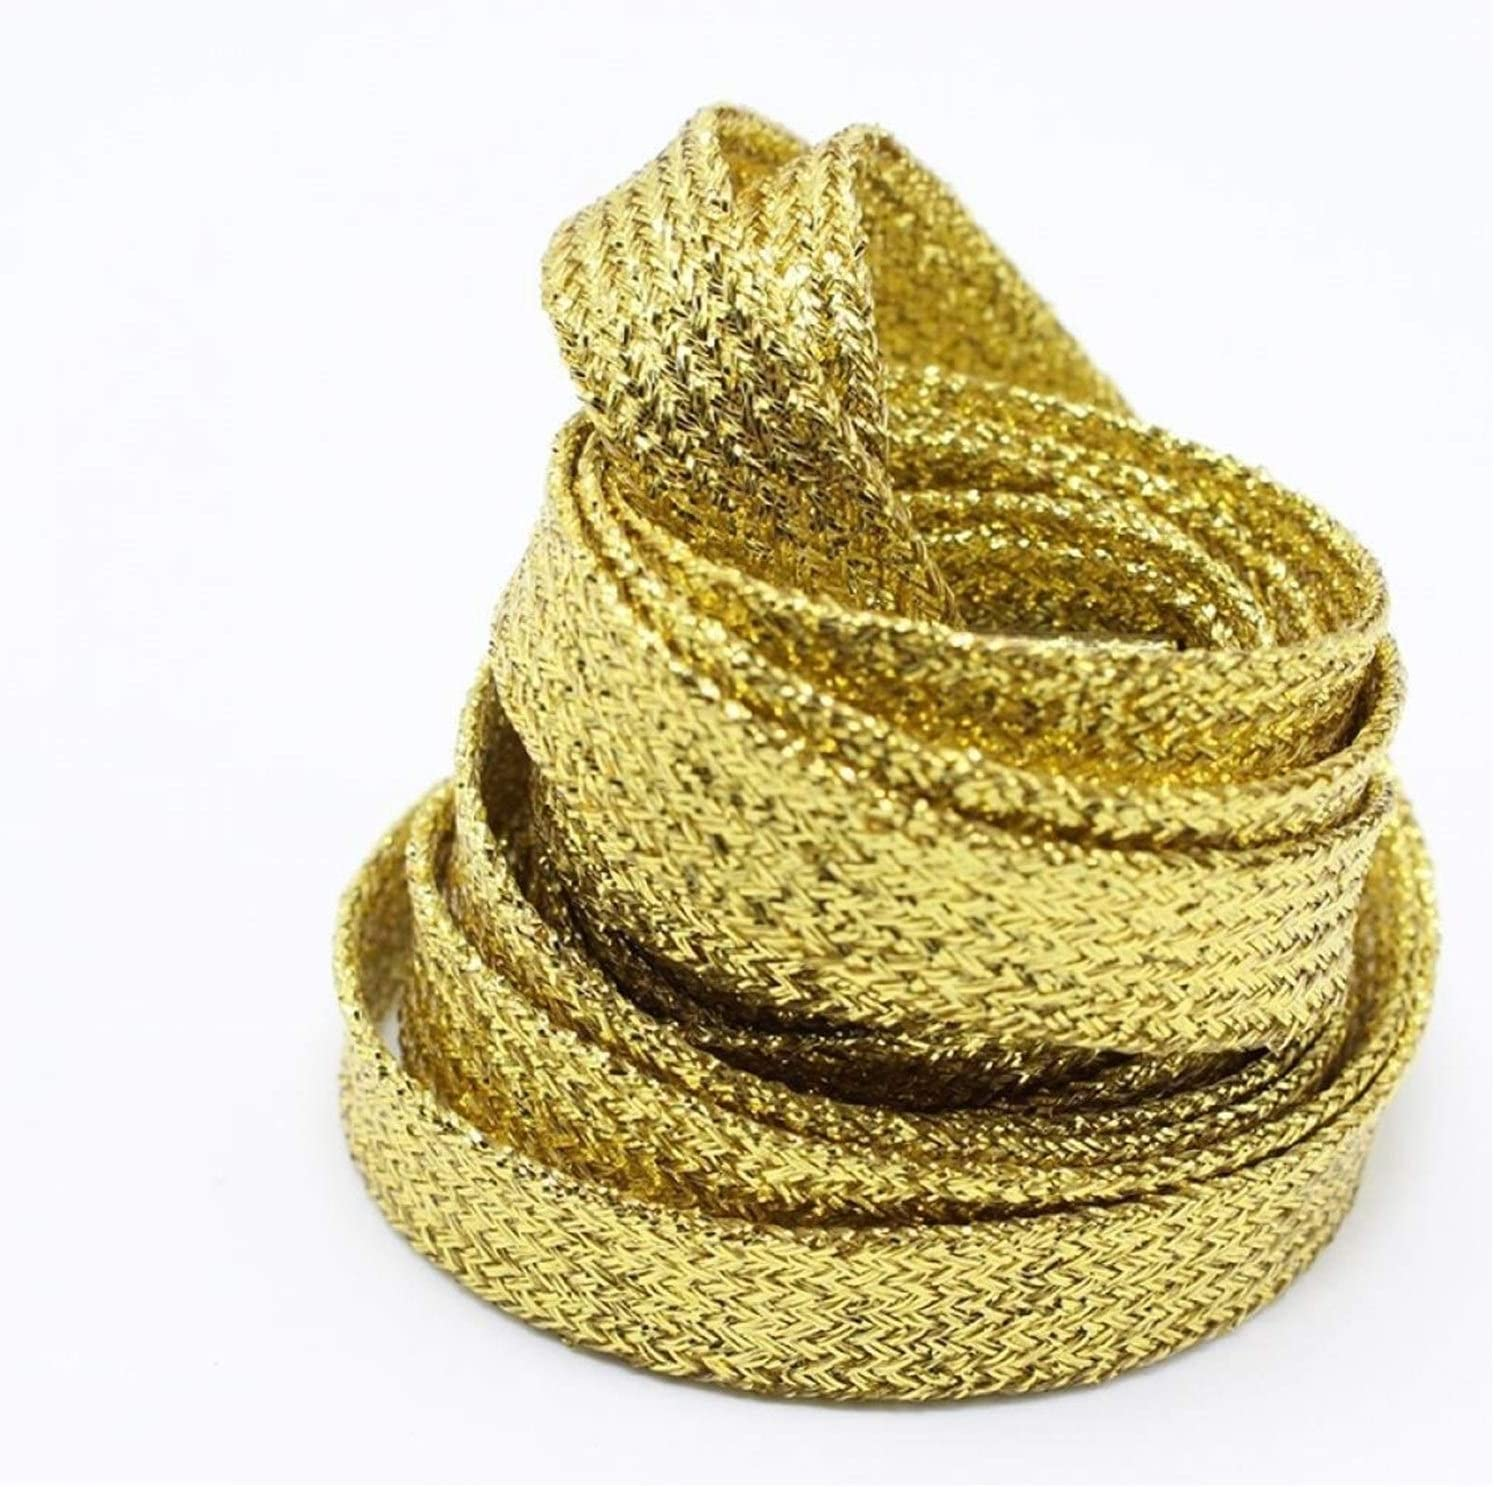 Color : Black RQBHD Colorful Man Women Shoelaces of Sneakers Metallic Glitter Shiny Gold Shoelace Silver Flat Shoe Laces Sports Running Shoe Lacing